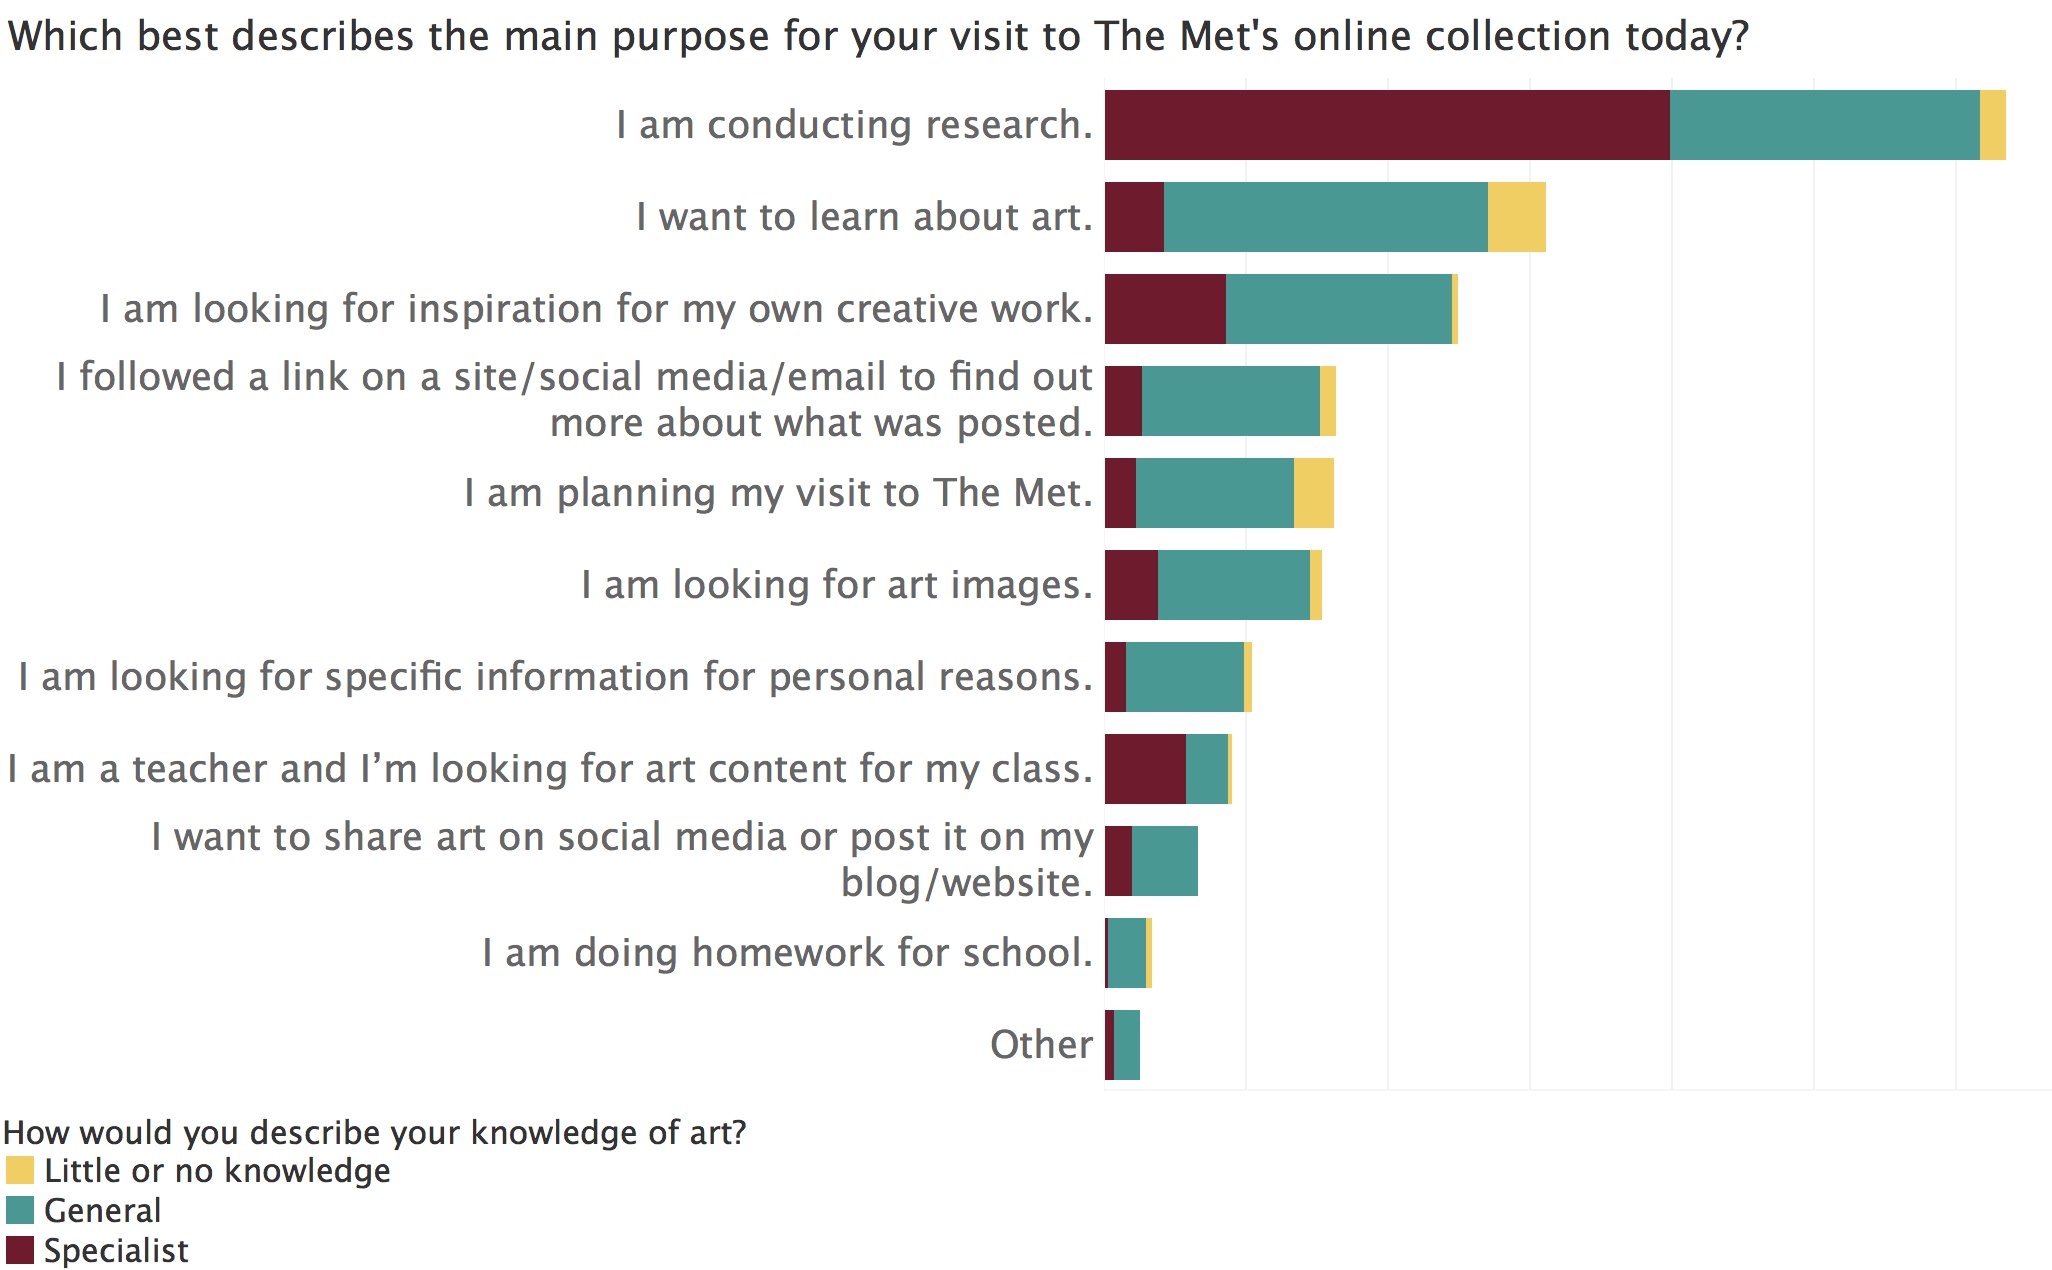 Who Are the Users of The Met's Online Collection? - Elena